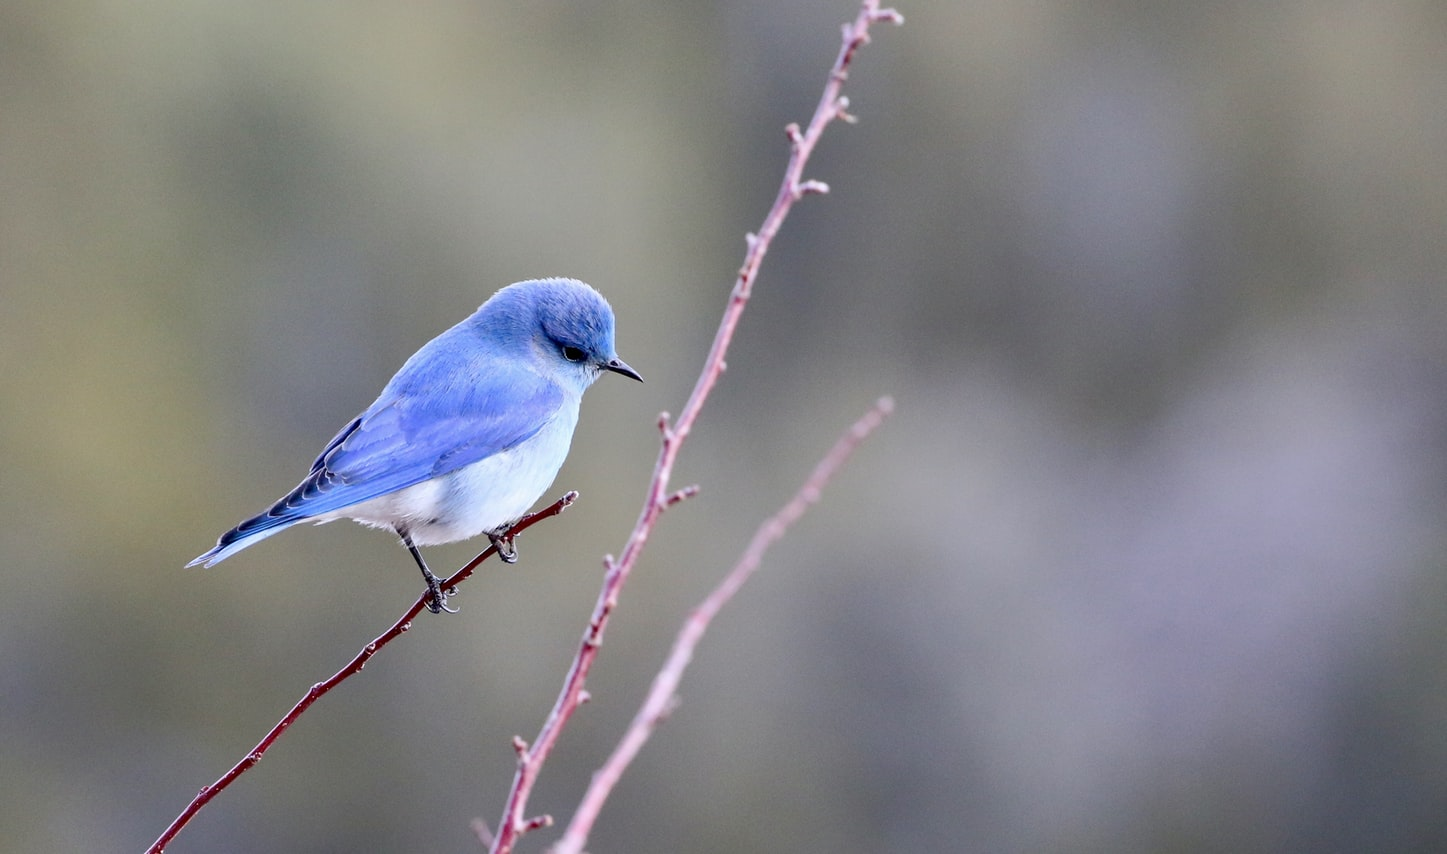 blue bird that looks like the Twitter logo